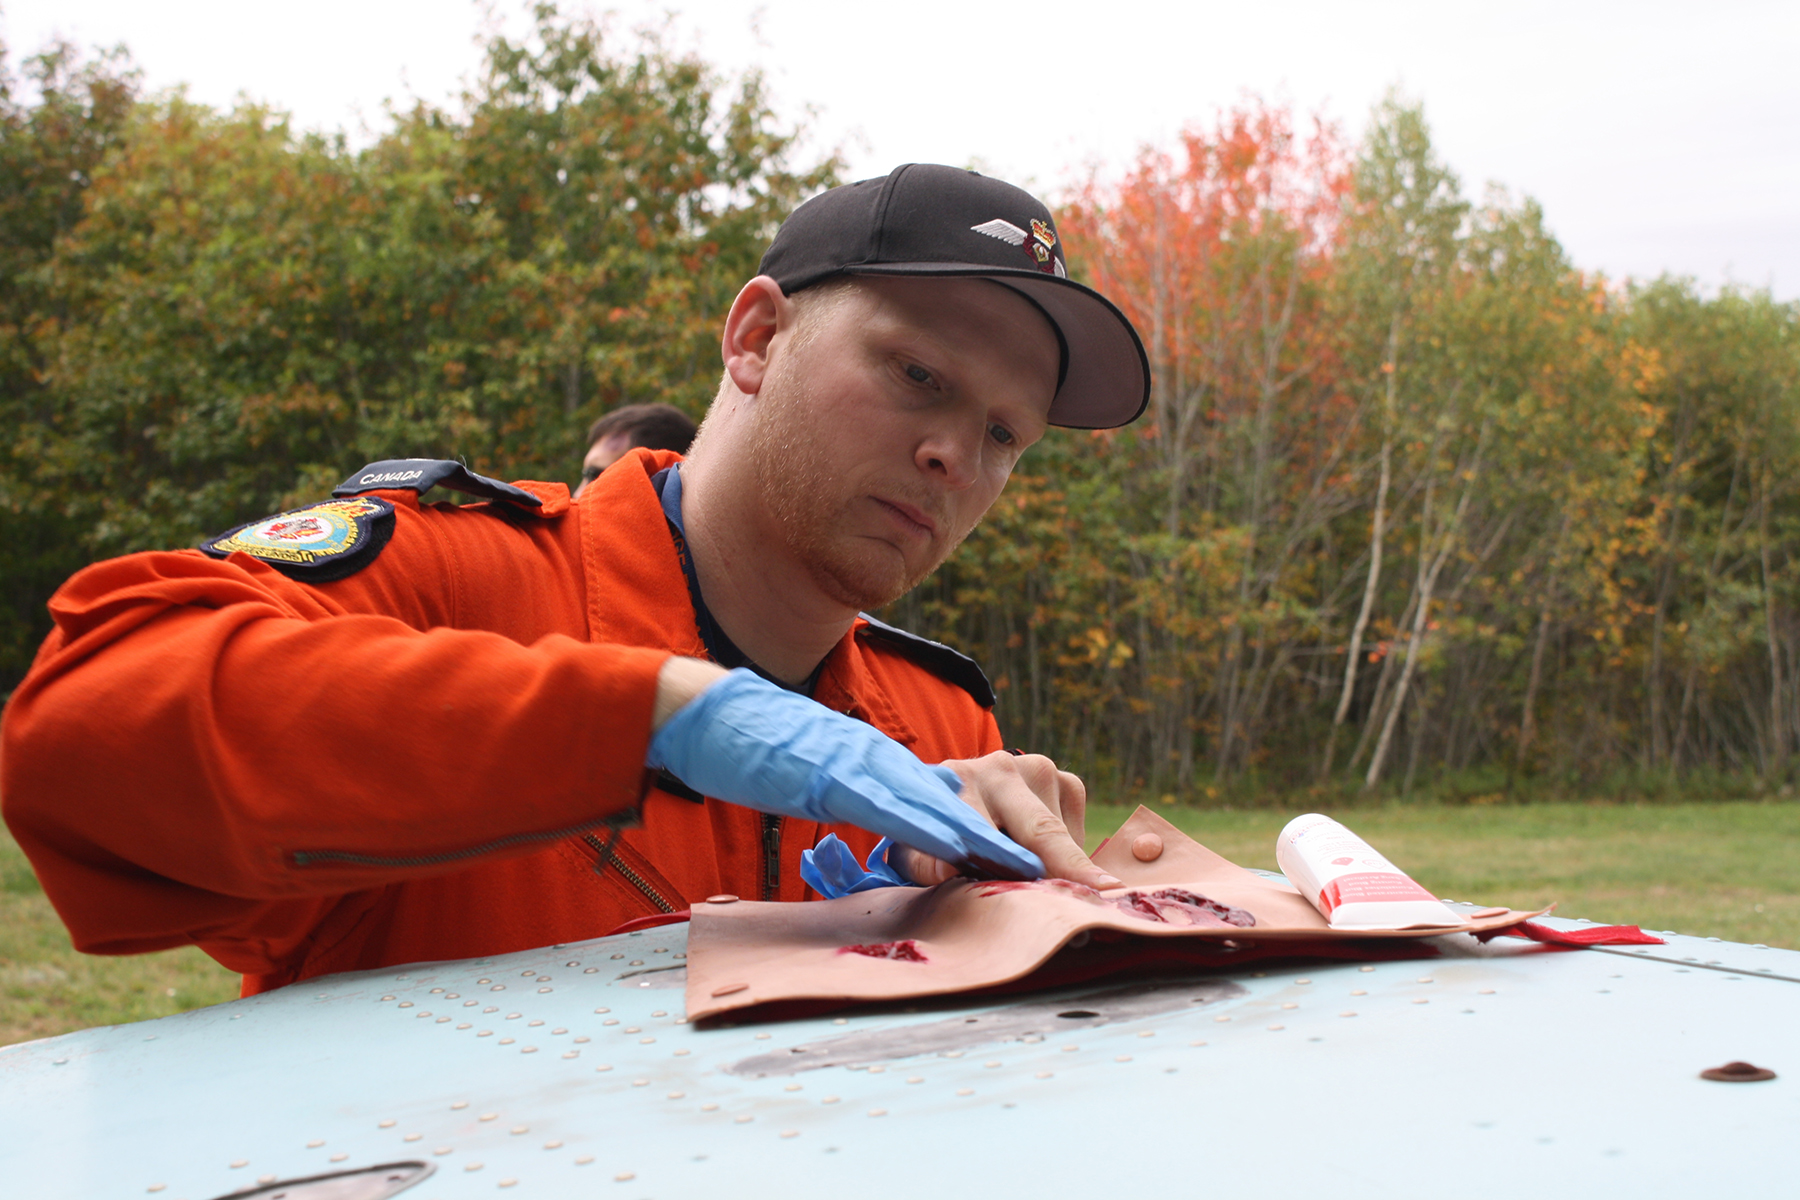 On October 5, 2018, Master Corporal Alexandre Lanoix creates a simulated wound wrap that will be worn by a volunteer victim of a simulated two-aircraft crash during 413 Transport and Rescue Squadron's search and rescue exercise. PHOTO: Sara White